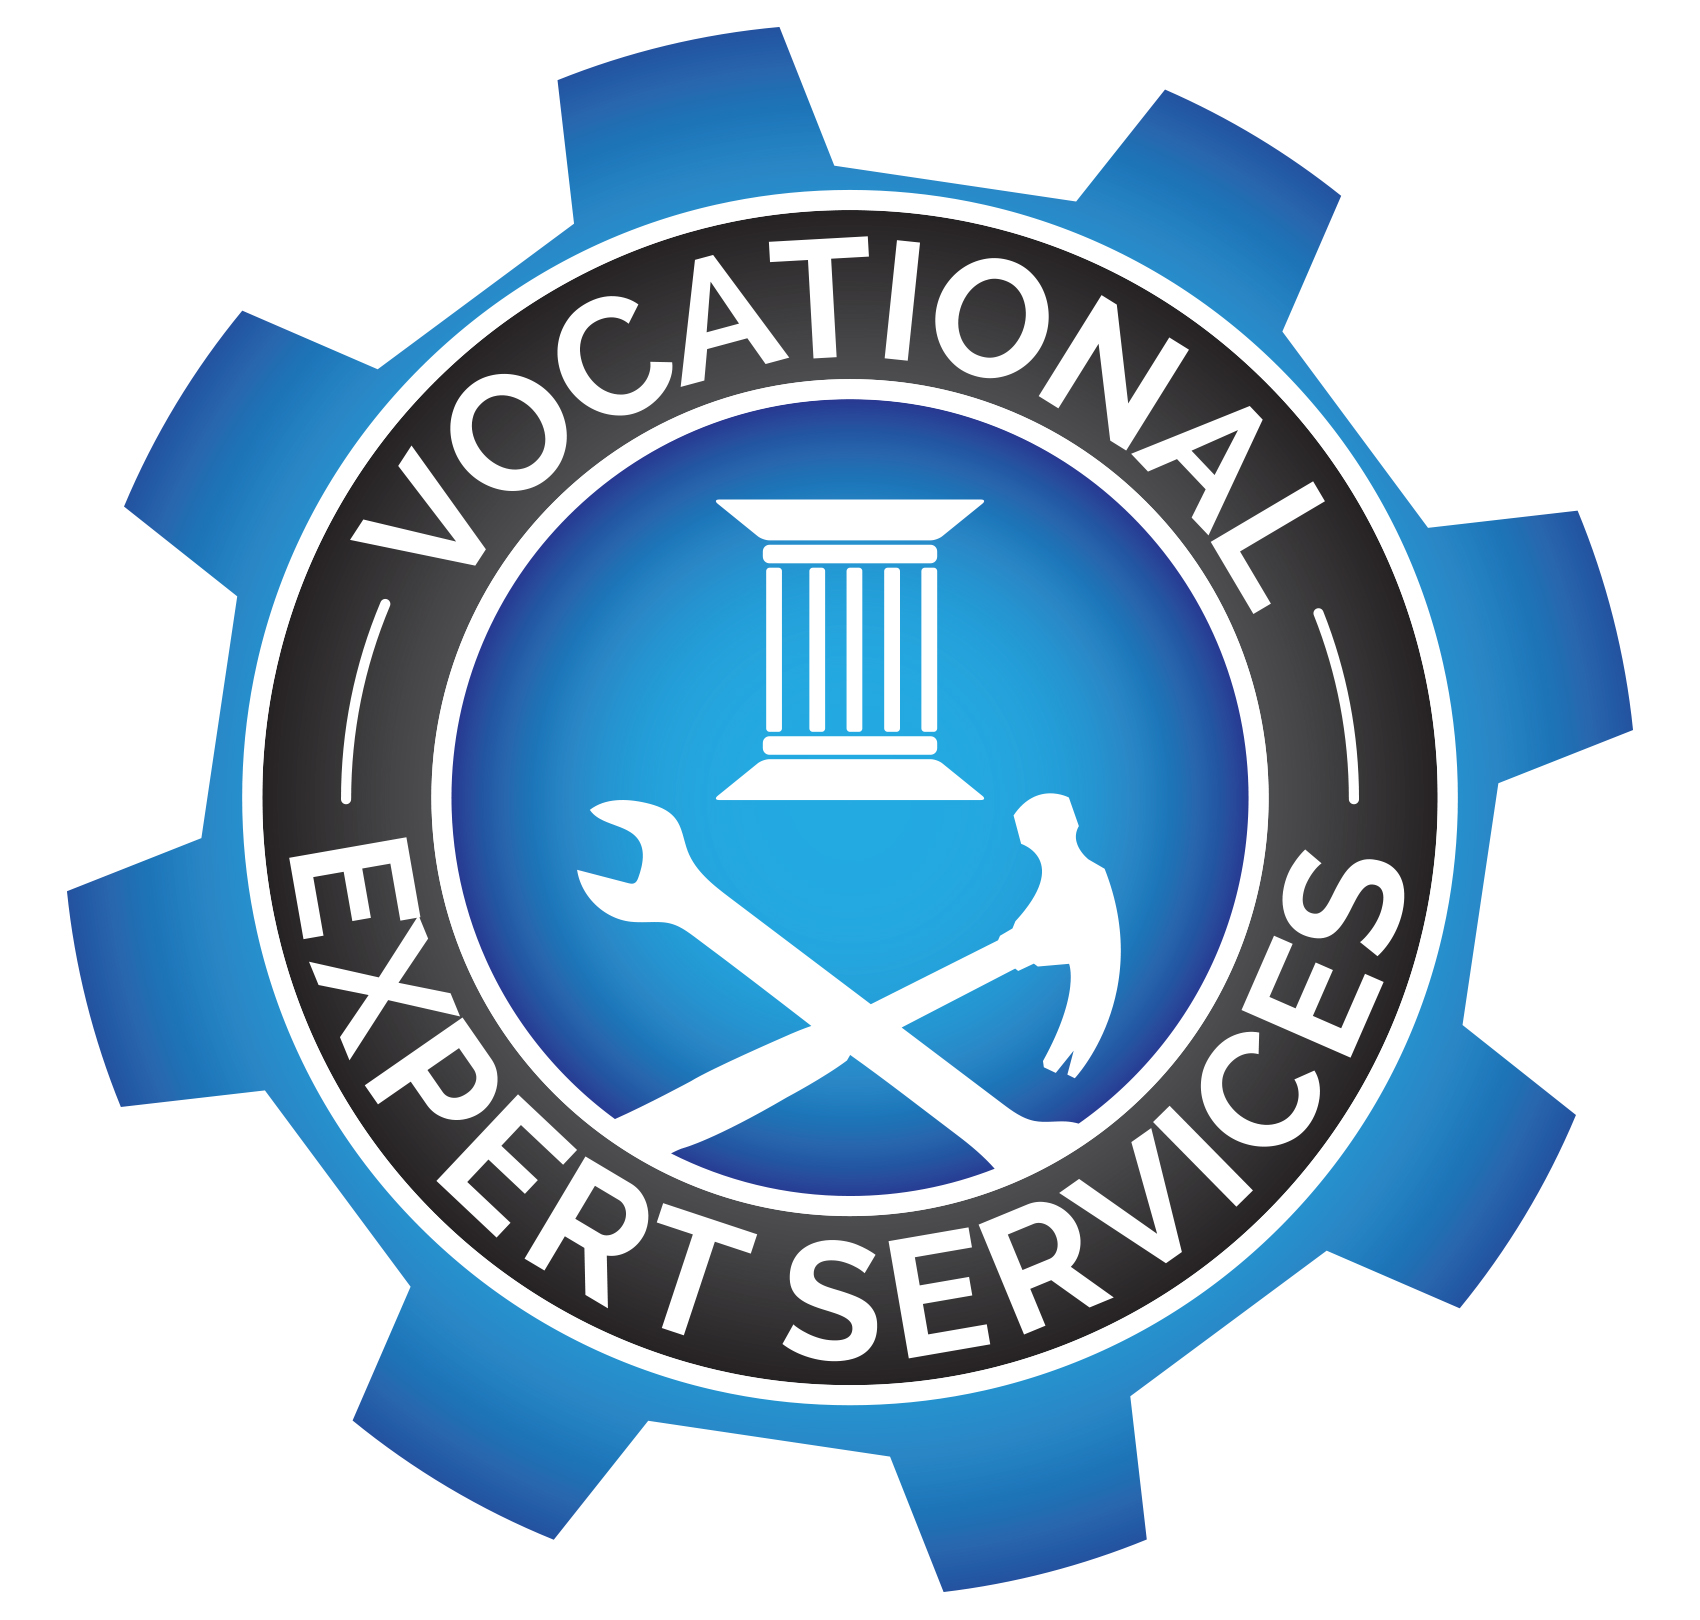 Vocational Expert Services